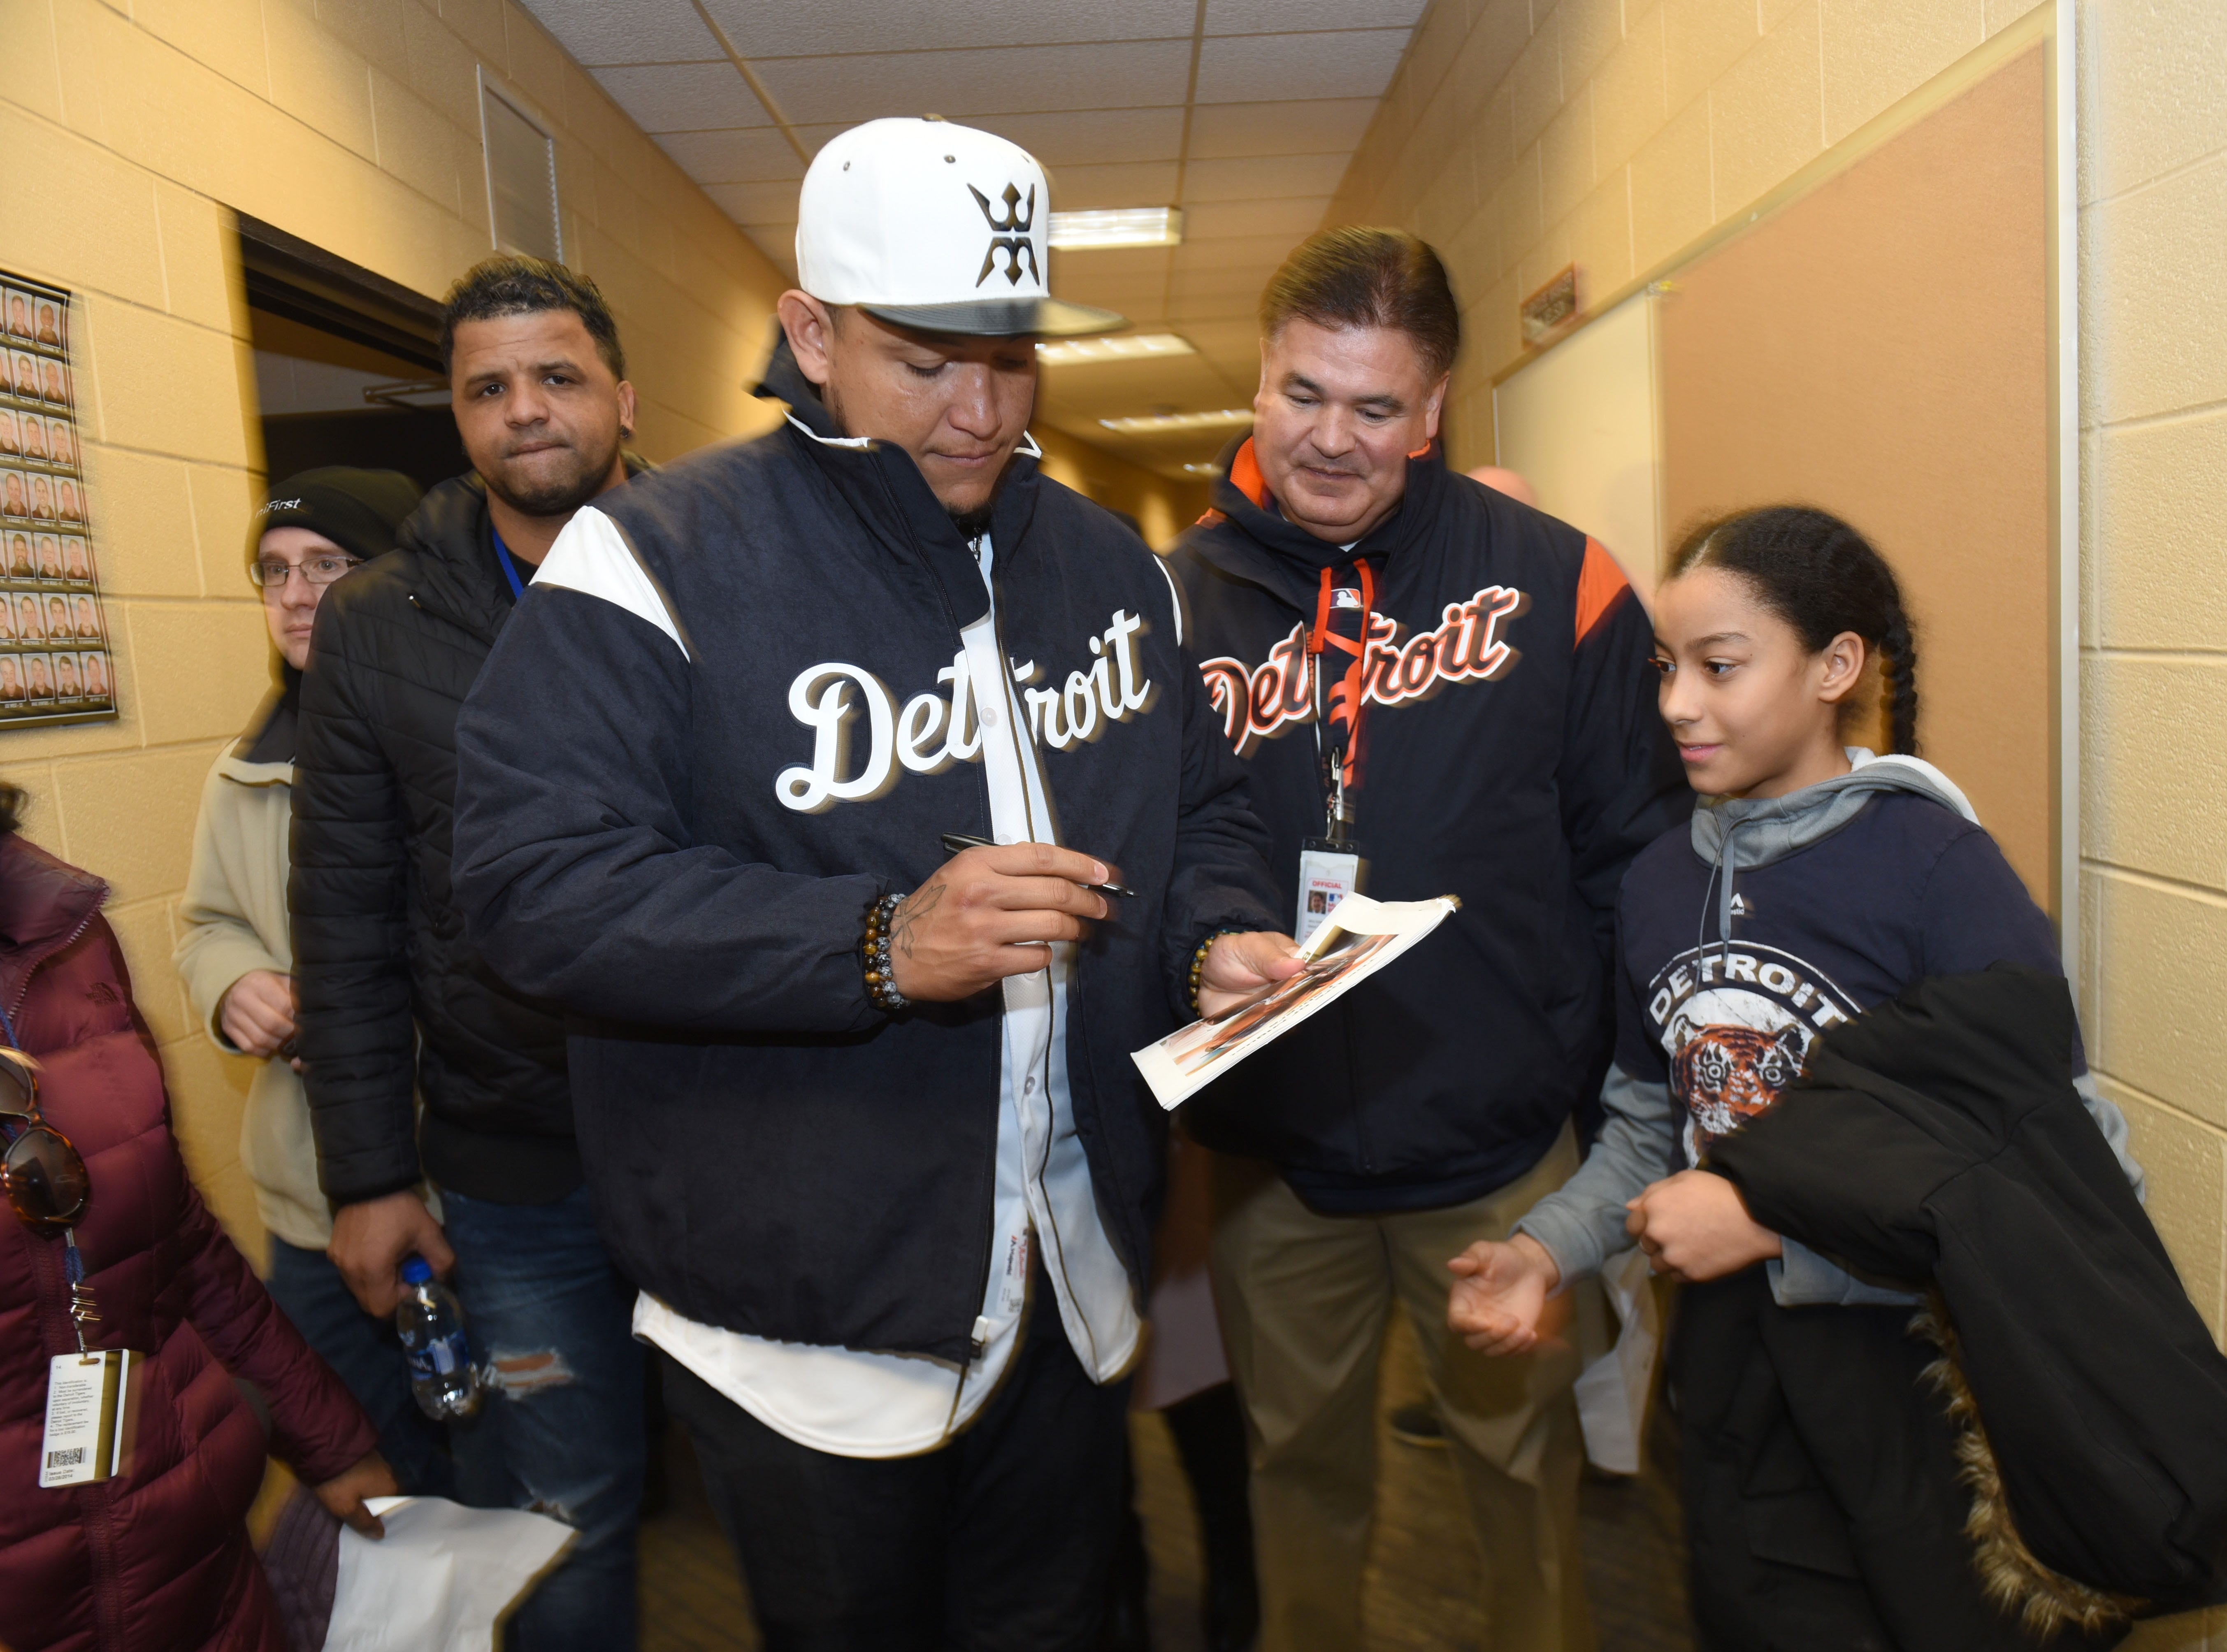 Detroit Tigers Miguel Cabrera signs an autograph for Layla Flores of Commerce Township during TigerFest on Saturday, January 26, 2019. Max Ortiz, The Detroit News